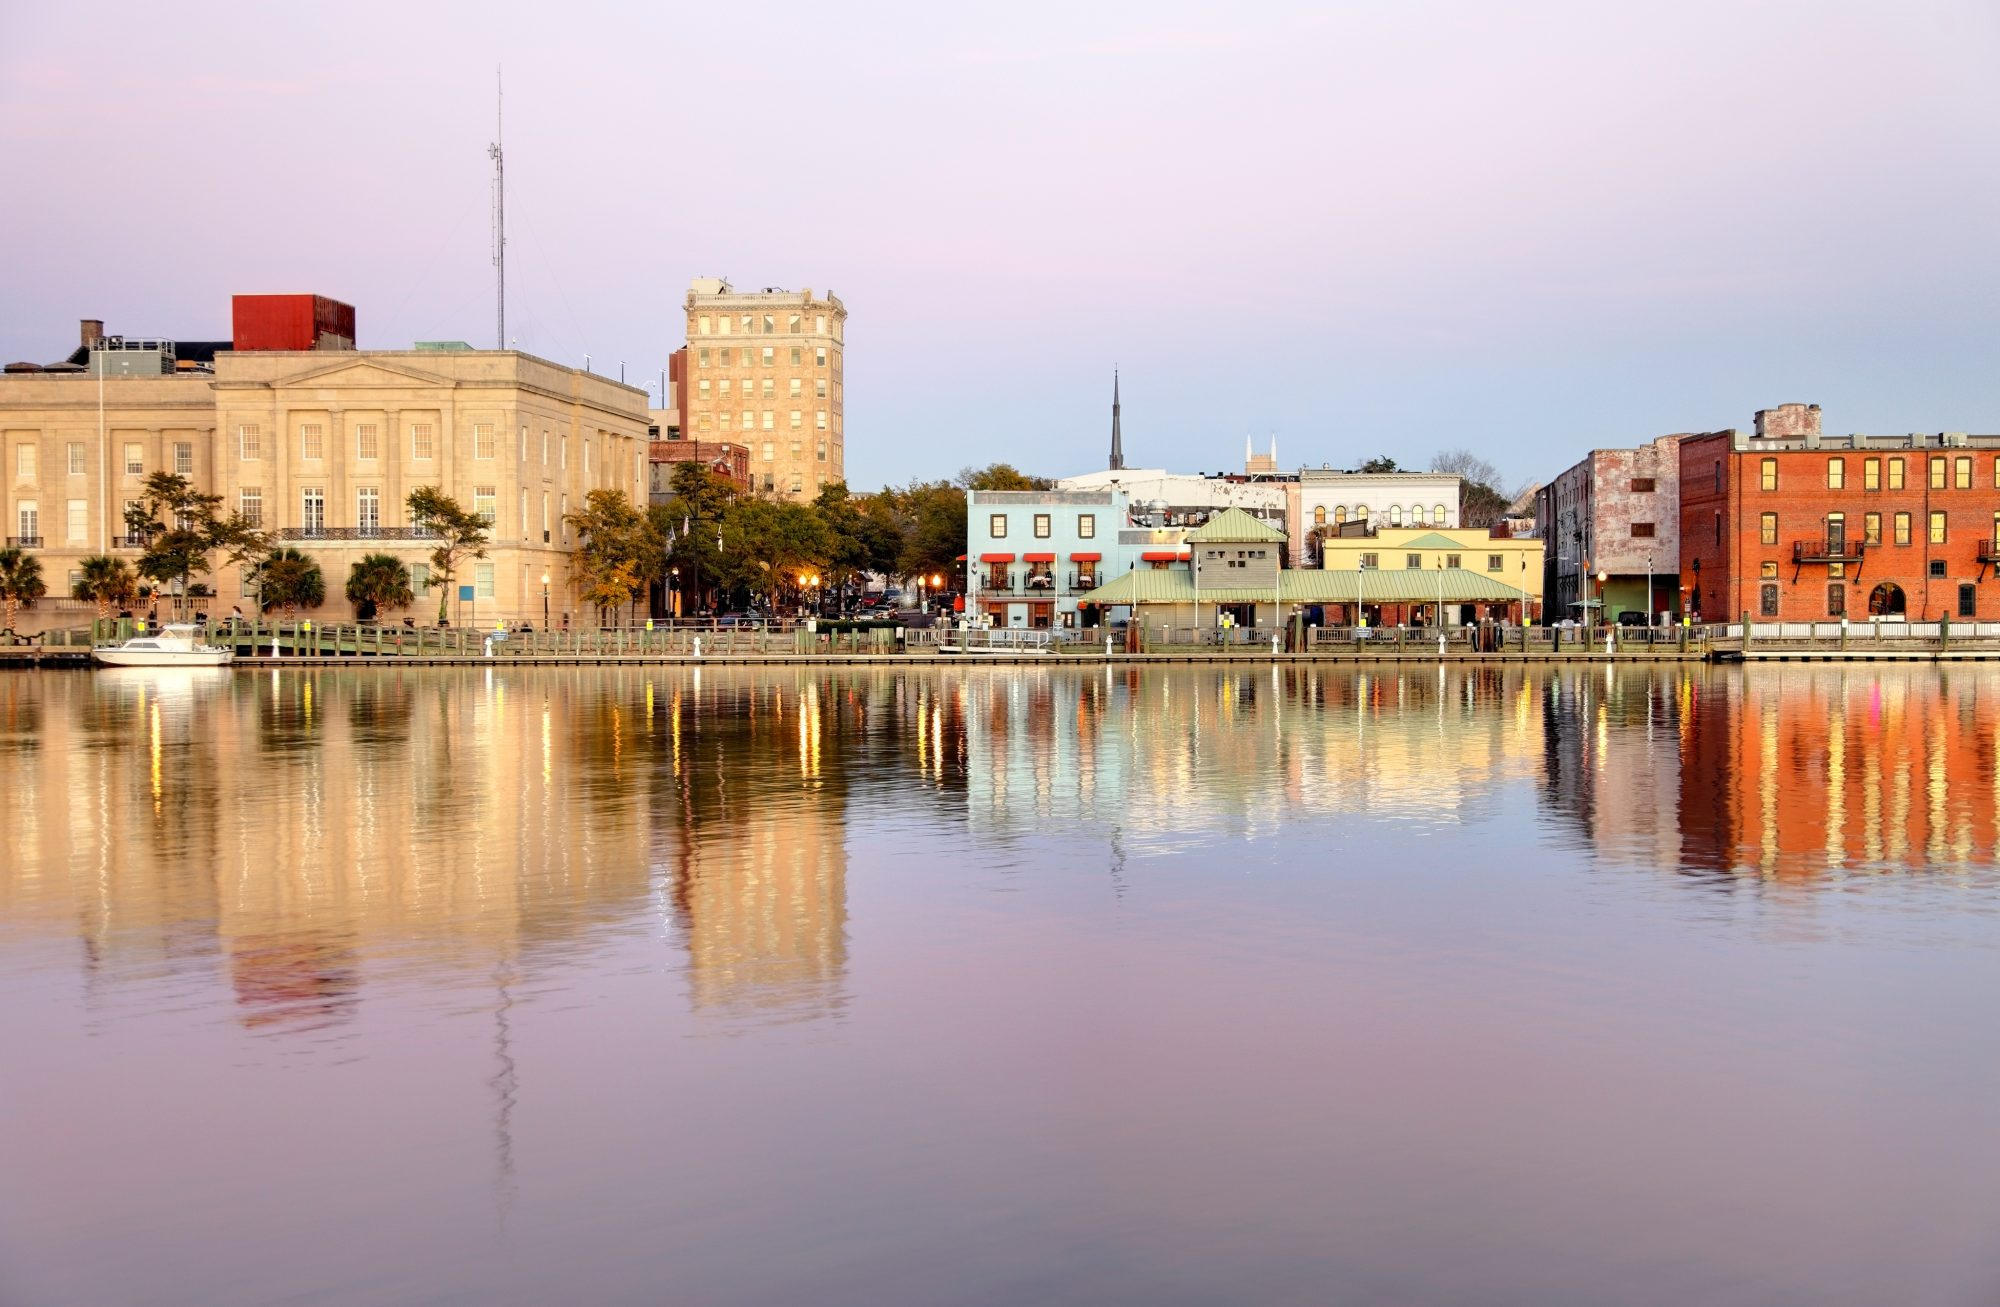 Downtown Wilmington, North Carolina